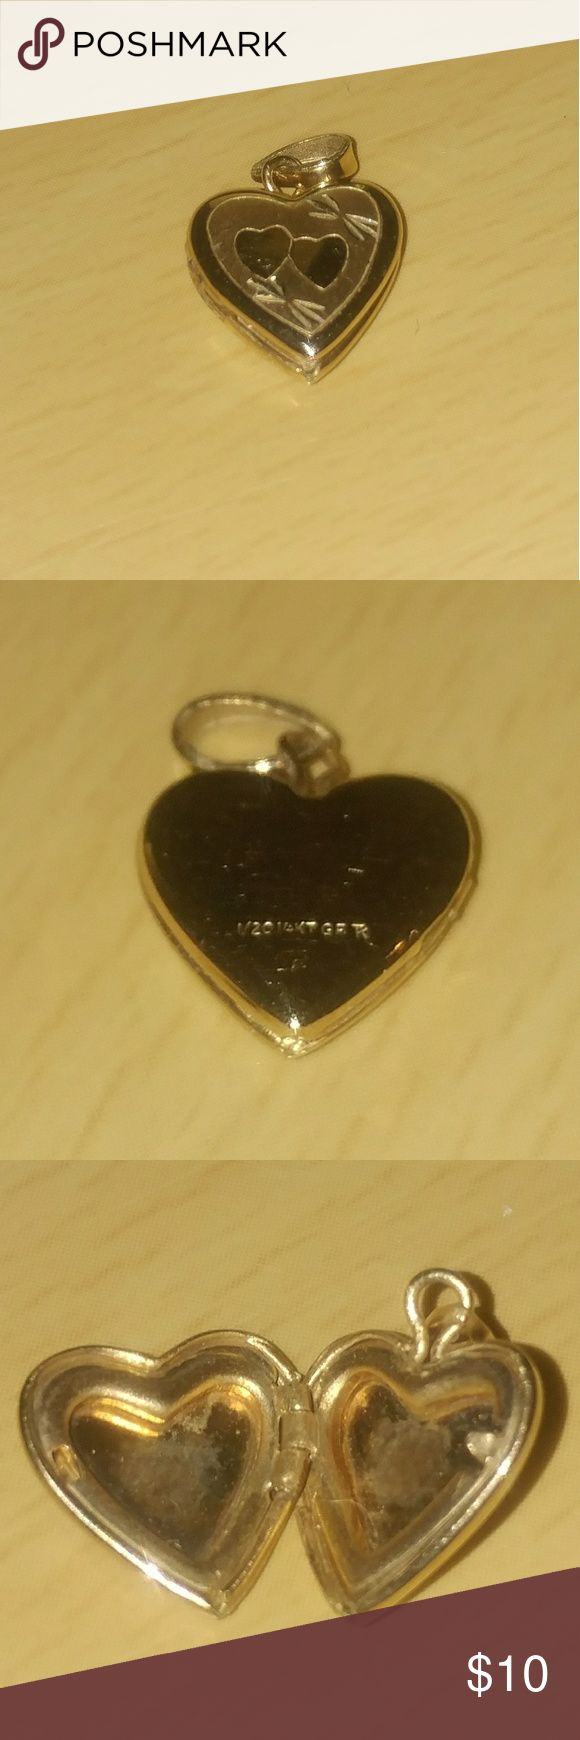 1/20 14kt GF Heart locket -used This cute, heart locket would look great on a gold chain. Nice for Valentine's day! Jewelry